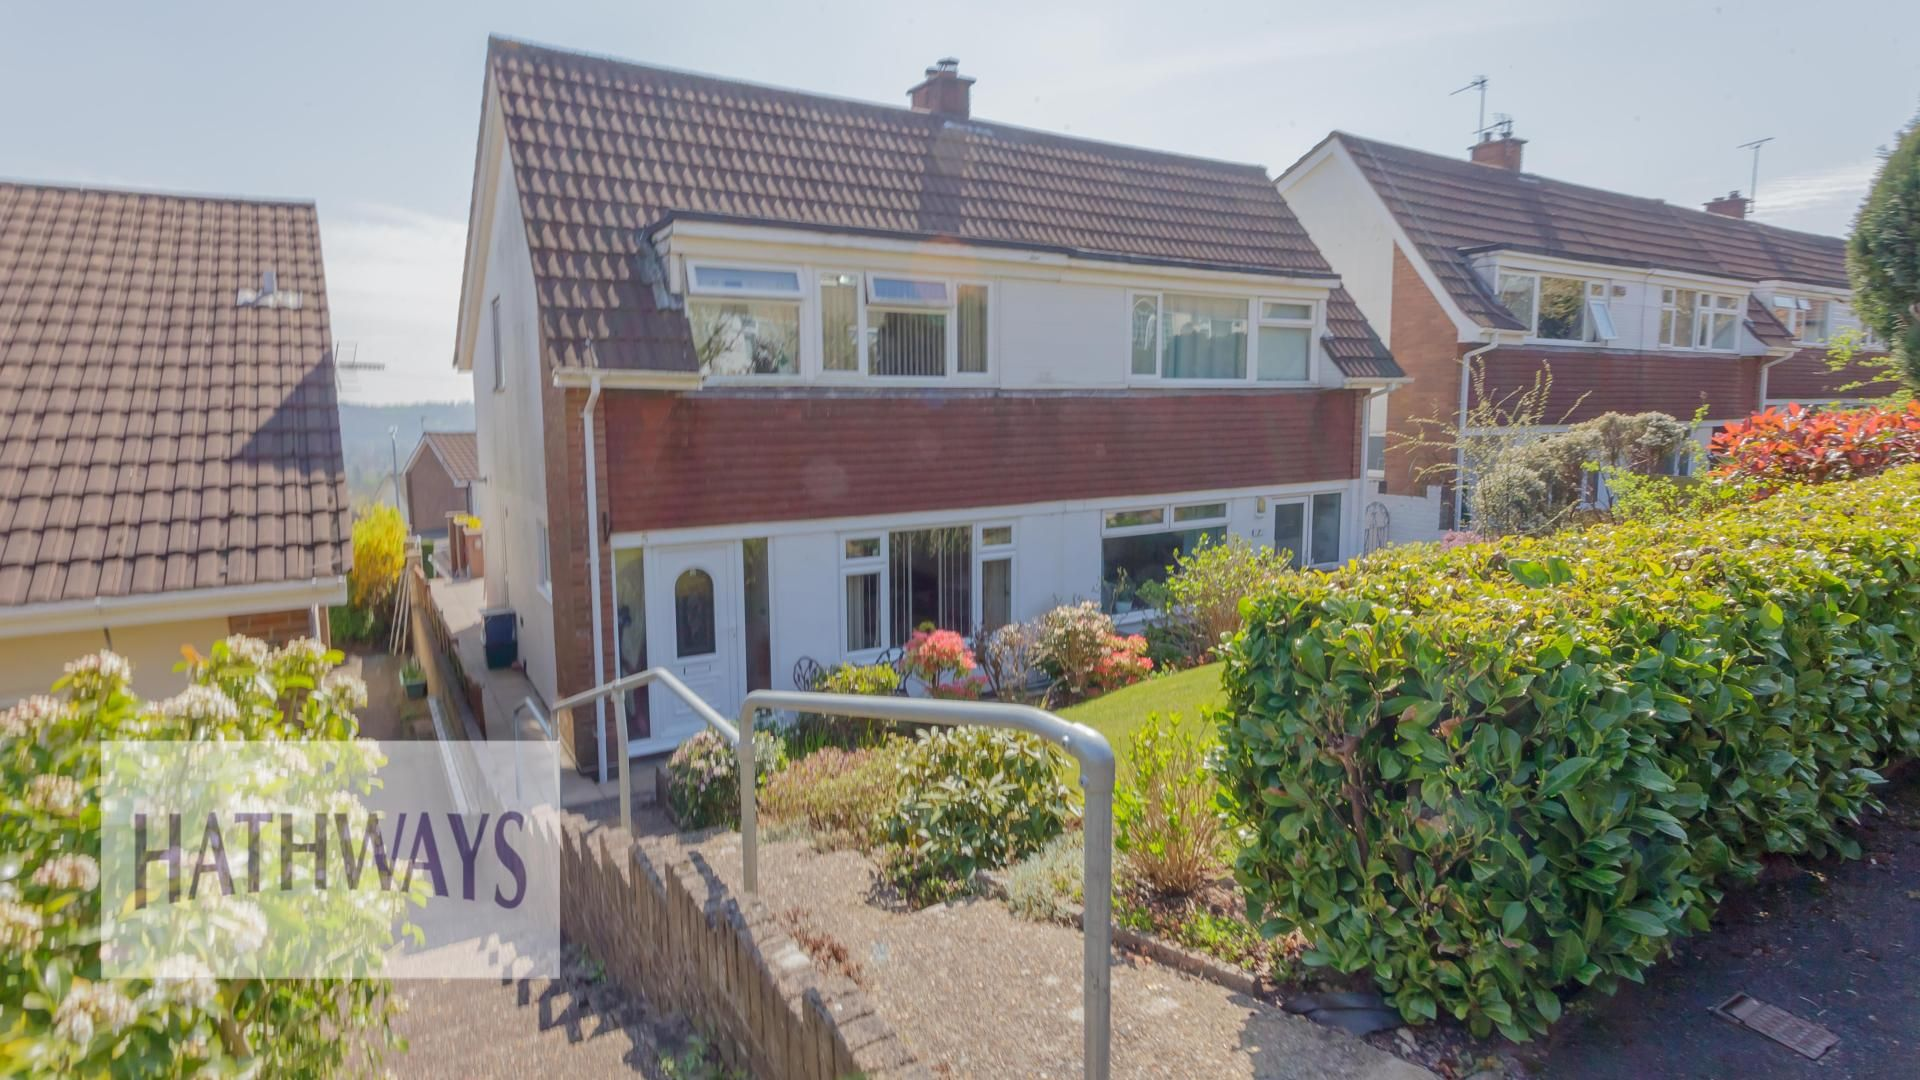 3 bed house for sale in Poplar Court, NP18